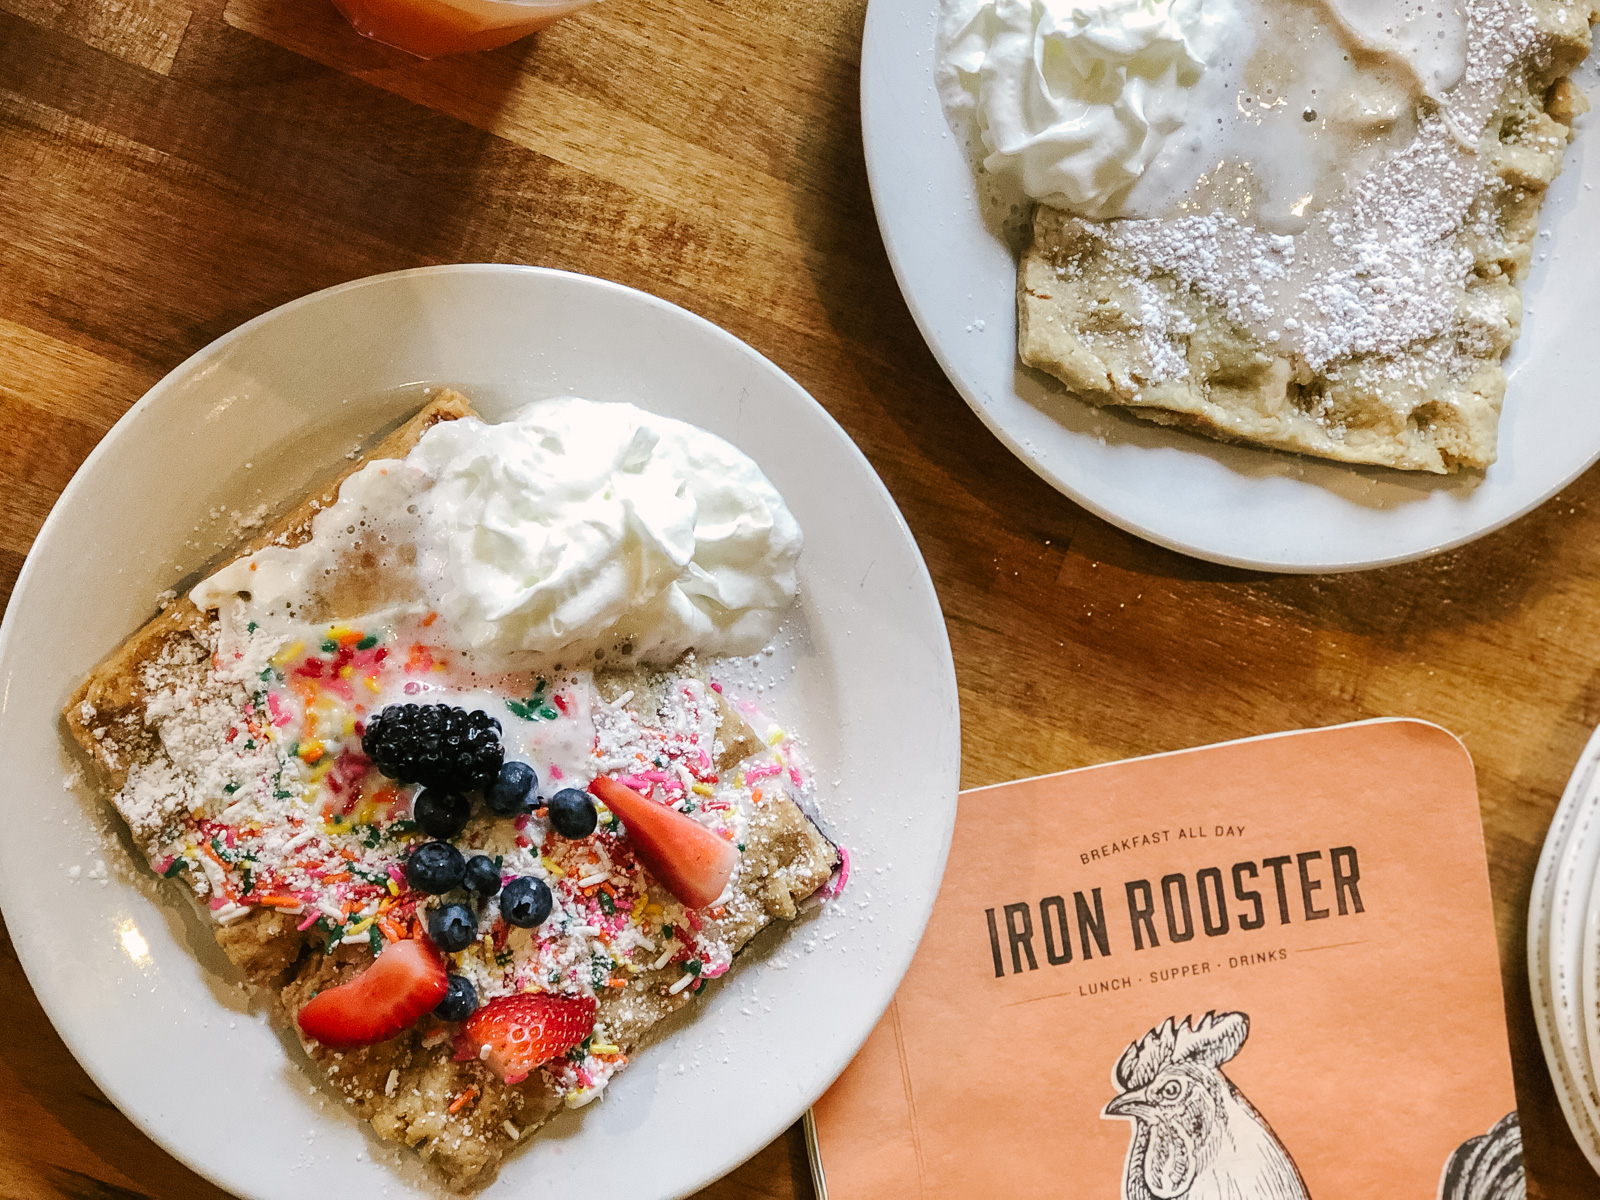 Iron Rooster Annapolis pop tarts | Don't miss the full Annapolis Weekend Guide: where to eat, what to do, and where to stay! | bylaurenm.com